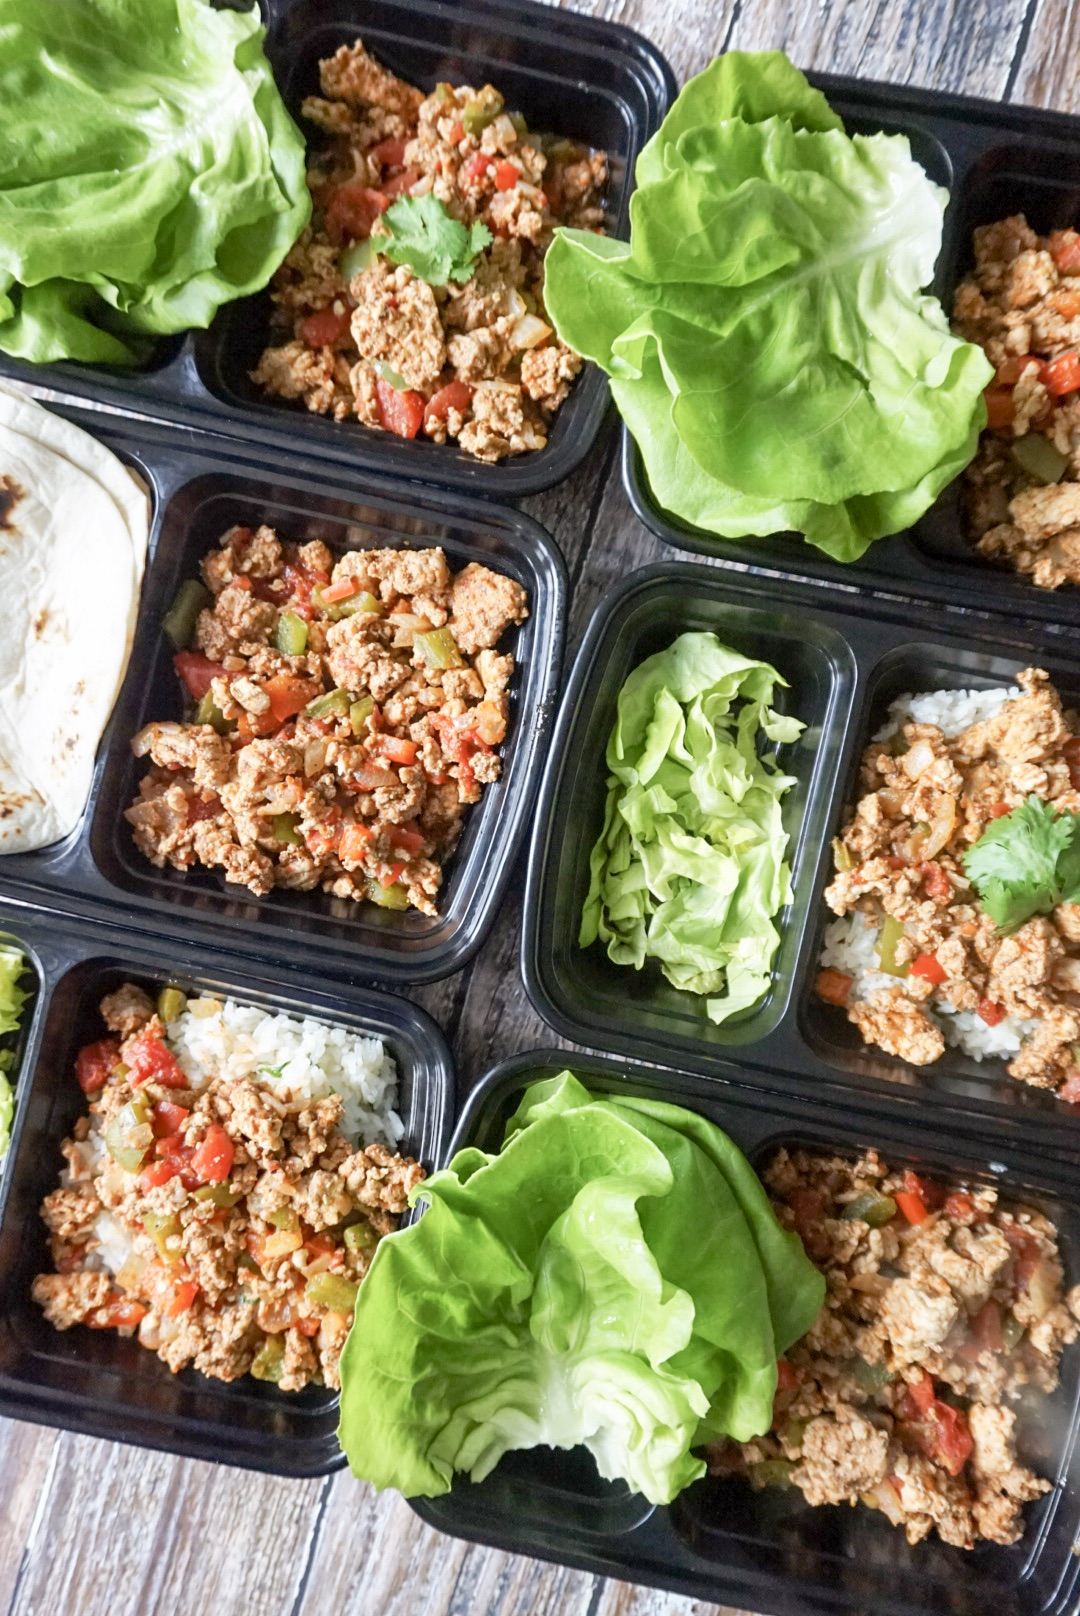 Meal Prep Taco Bowls with grain and topping of choice